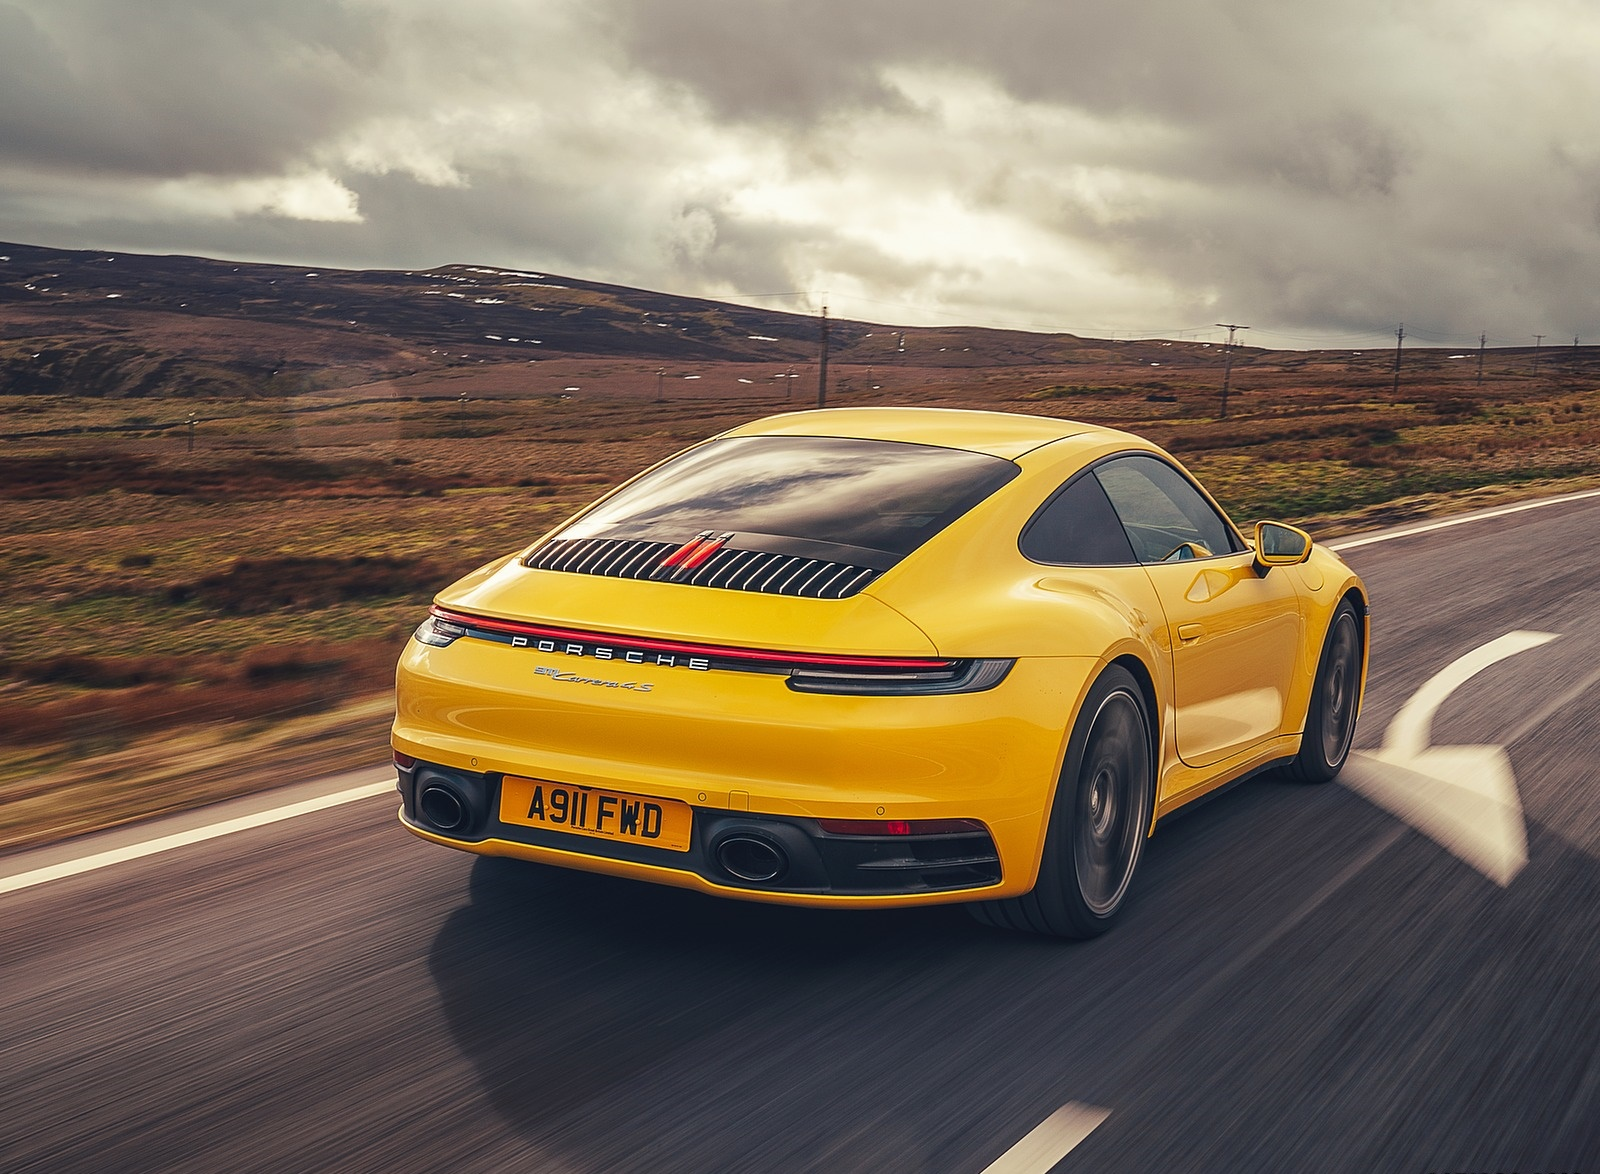 2019 Porsche 911 (992) Carrera 4S (UK-Spec) Rear Three-Quarter Wallpaper (4)